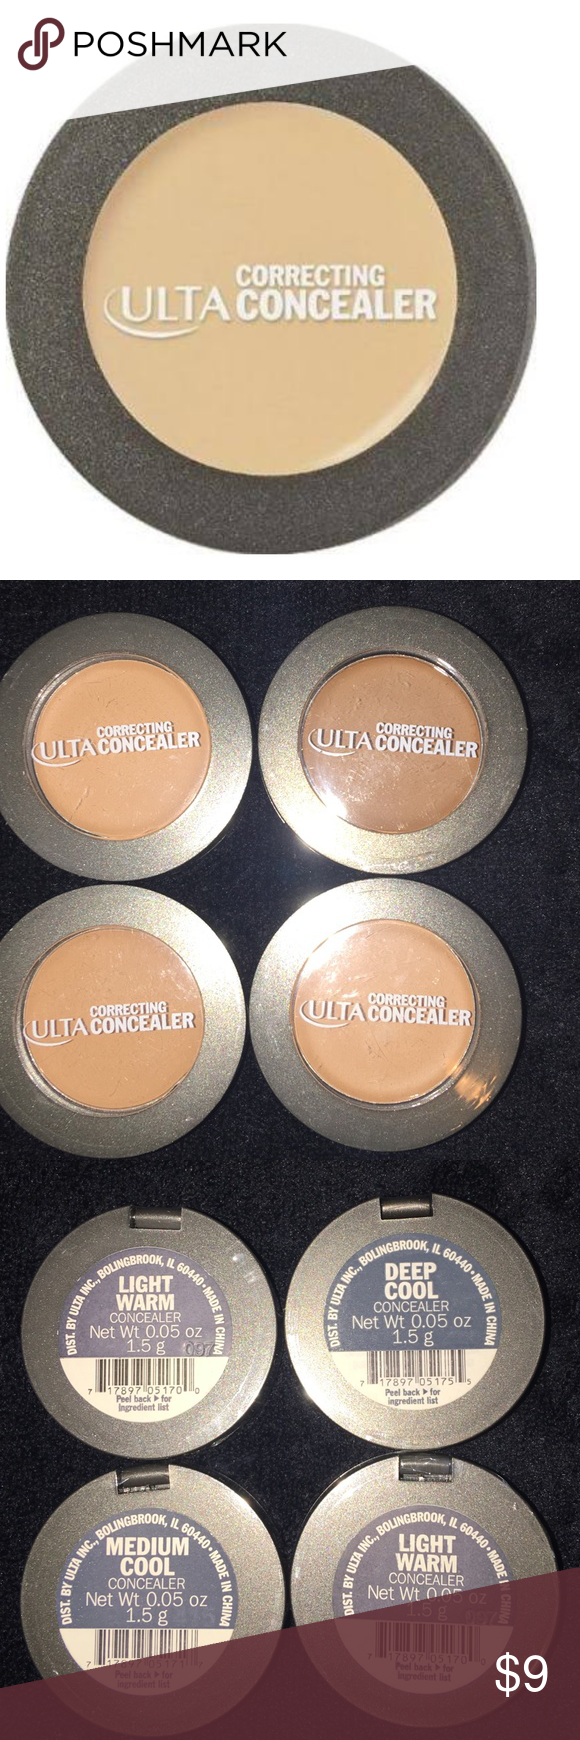 Ulta Beauty Correcting Concealer Full Size NWT Concealer